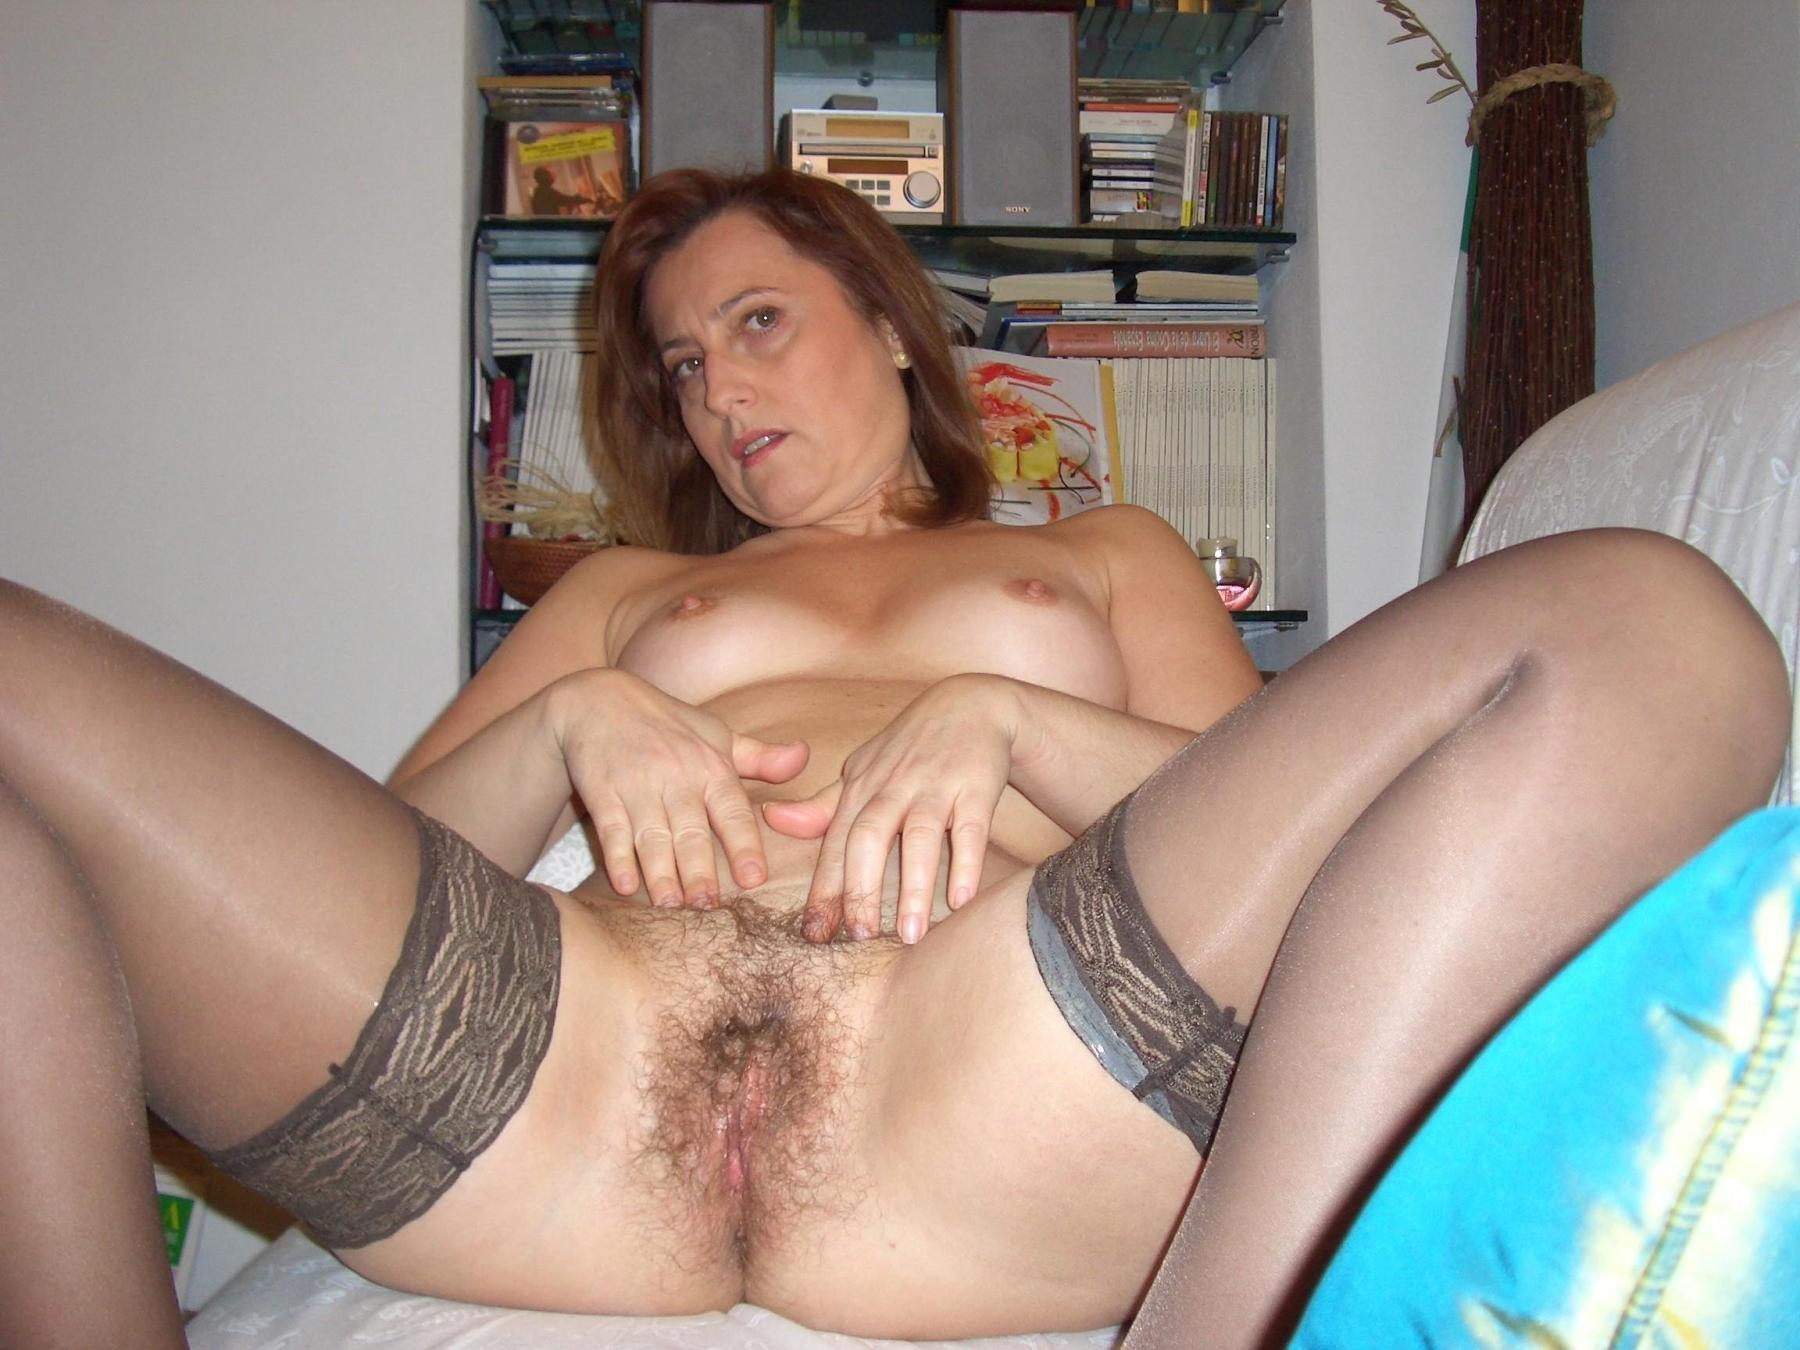 Sexy mature wife stretches out her hairy cunt on a sofa. Nude amateur old lady spreads her pussy wide open in stockings